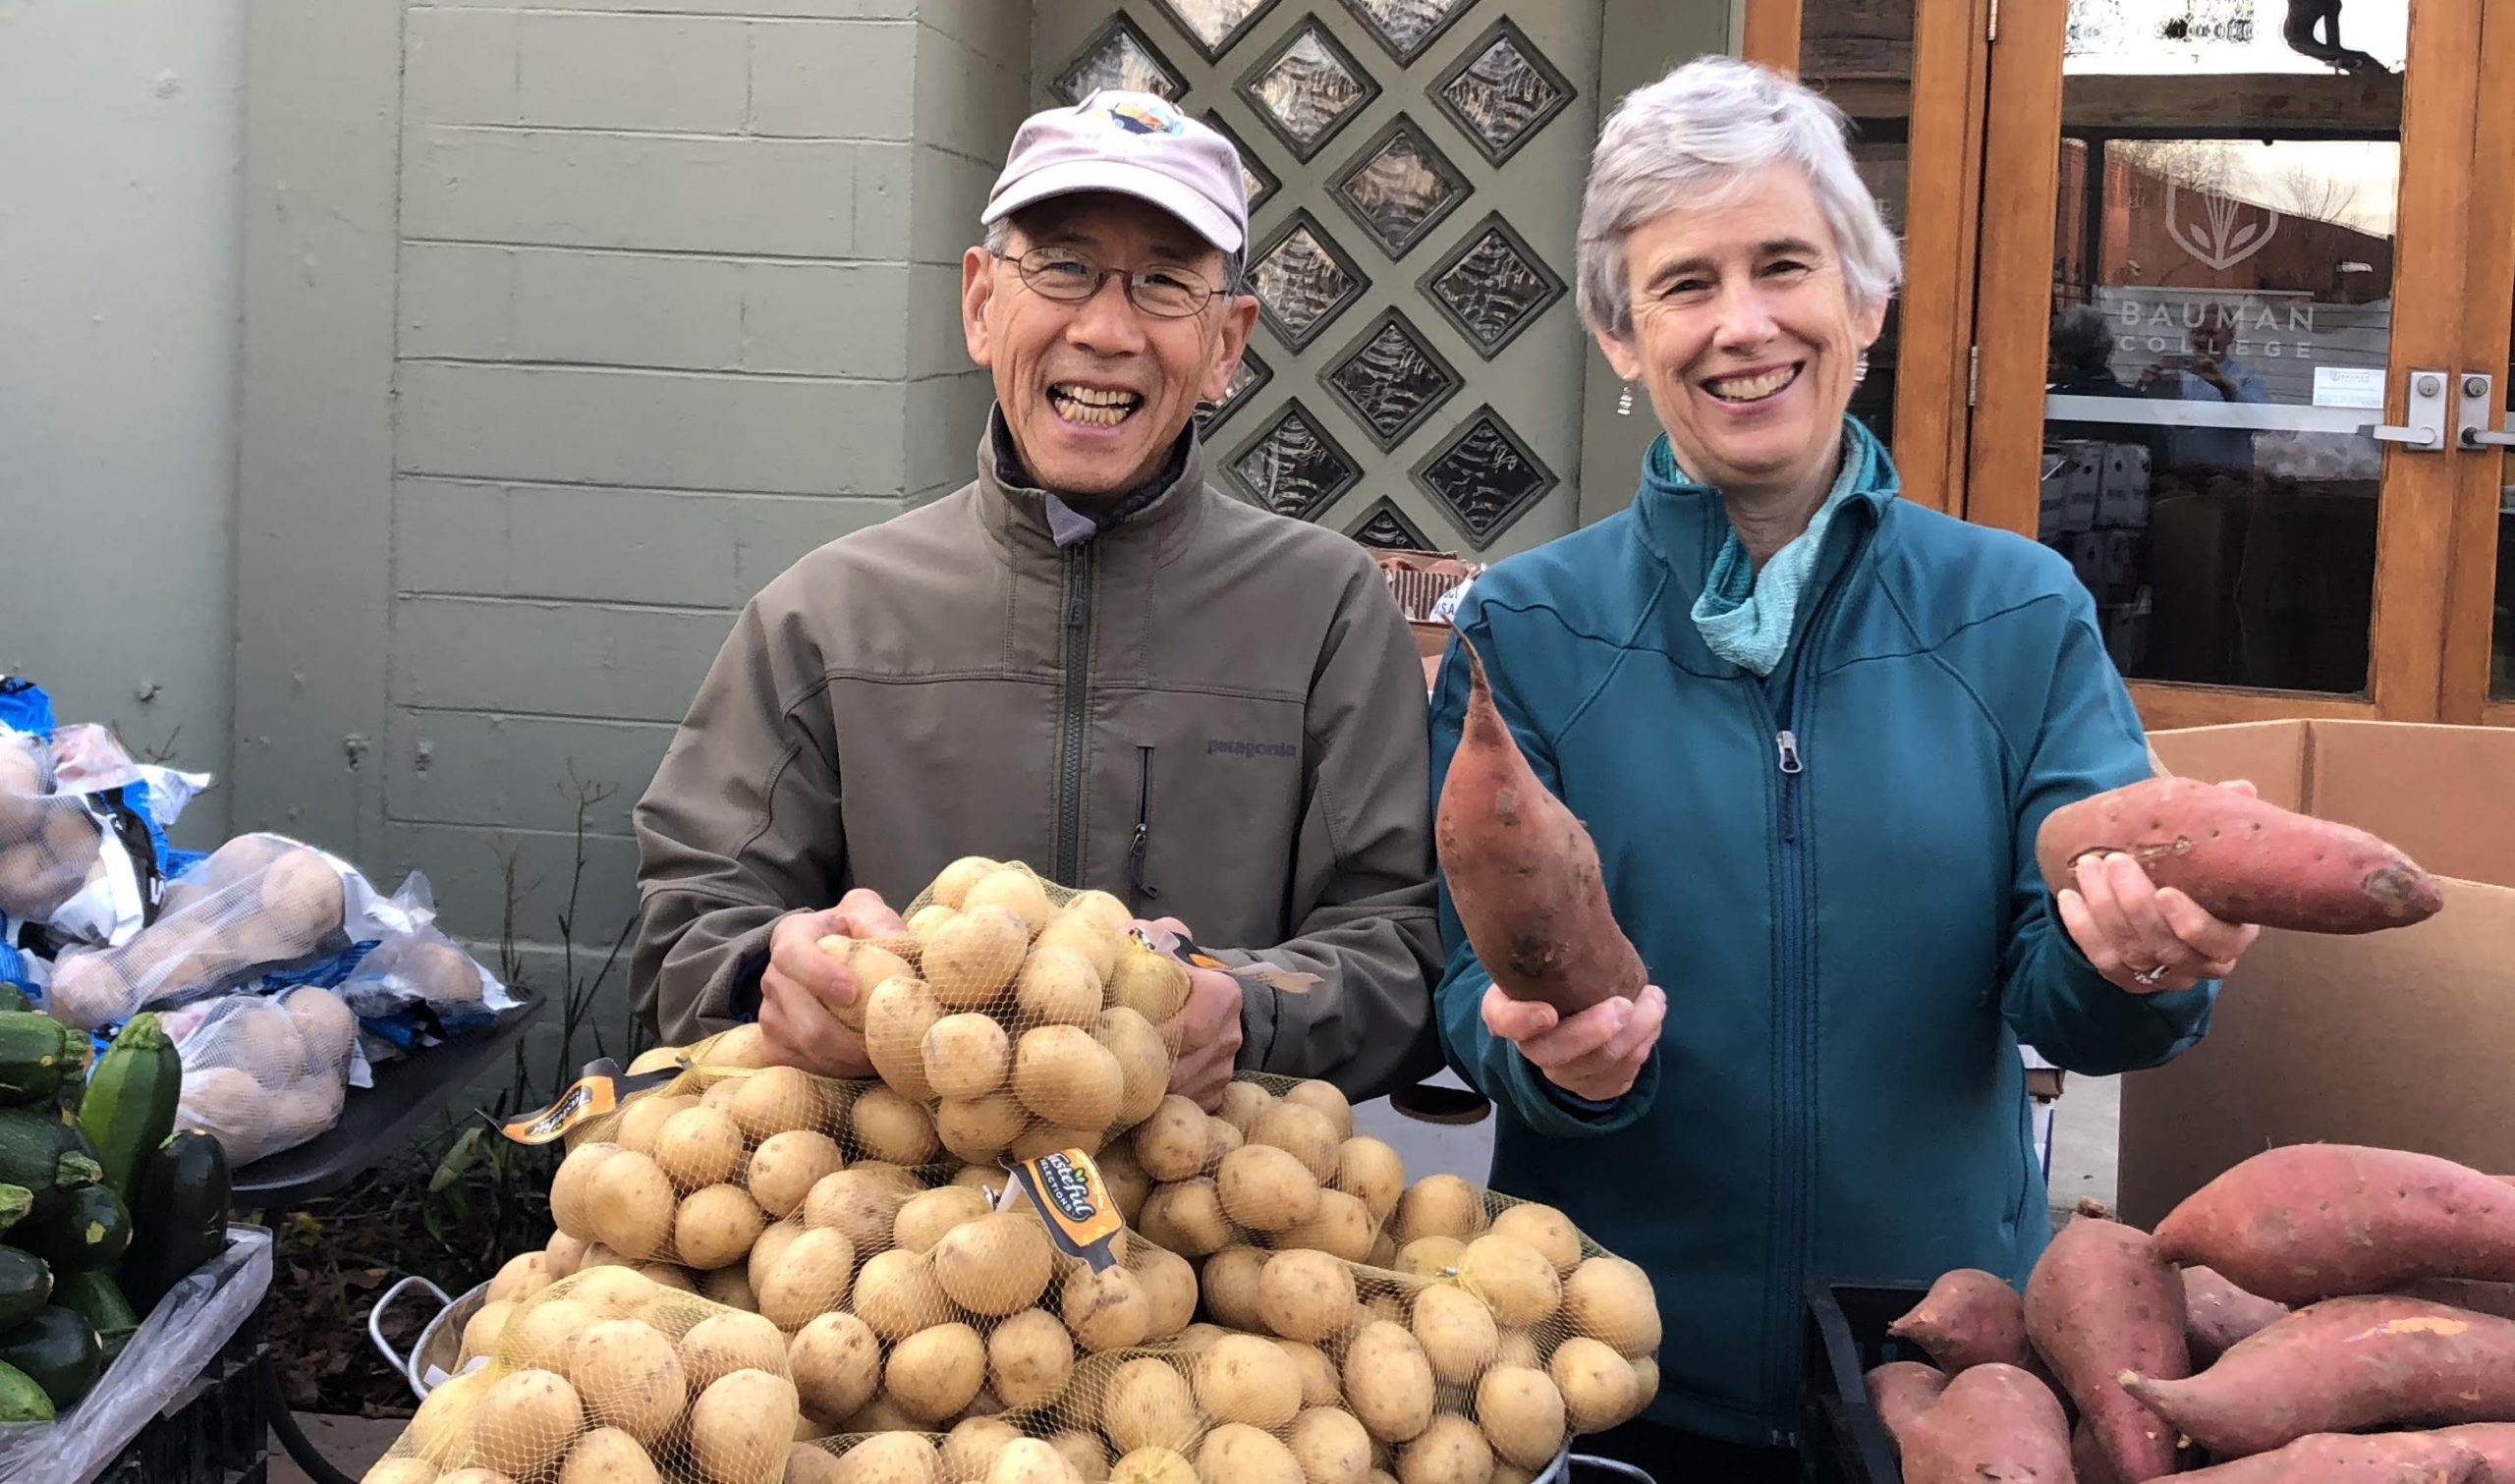 Major Hunger-Relief Investment Will Help Alleviate Growing Food Insecurity in Berkeley